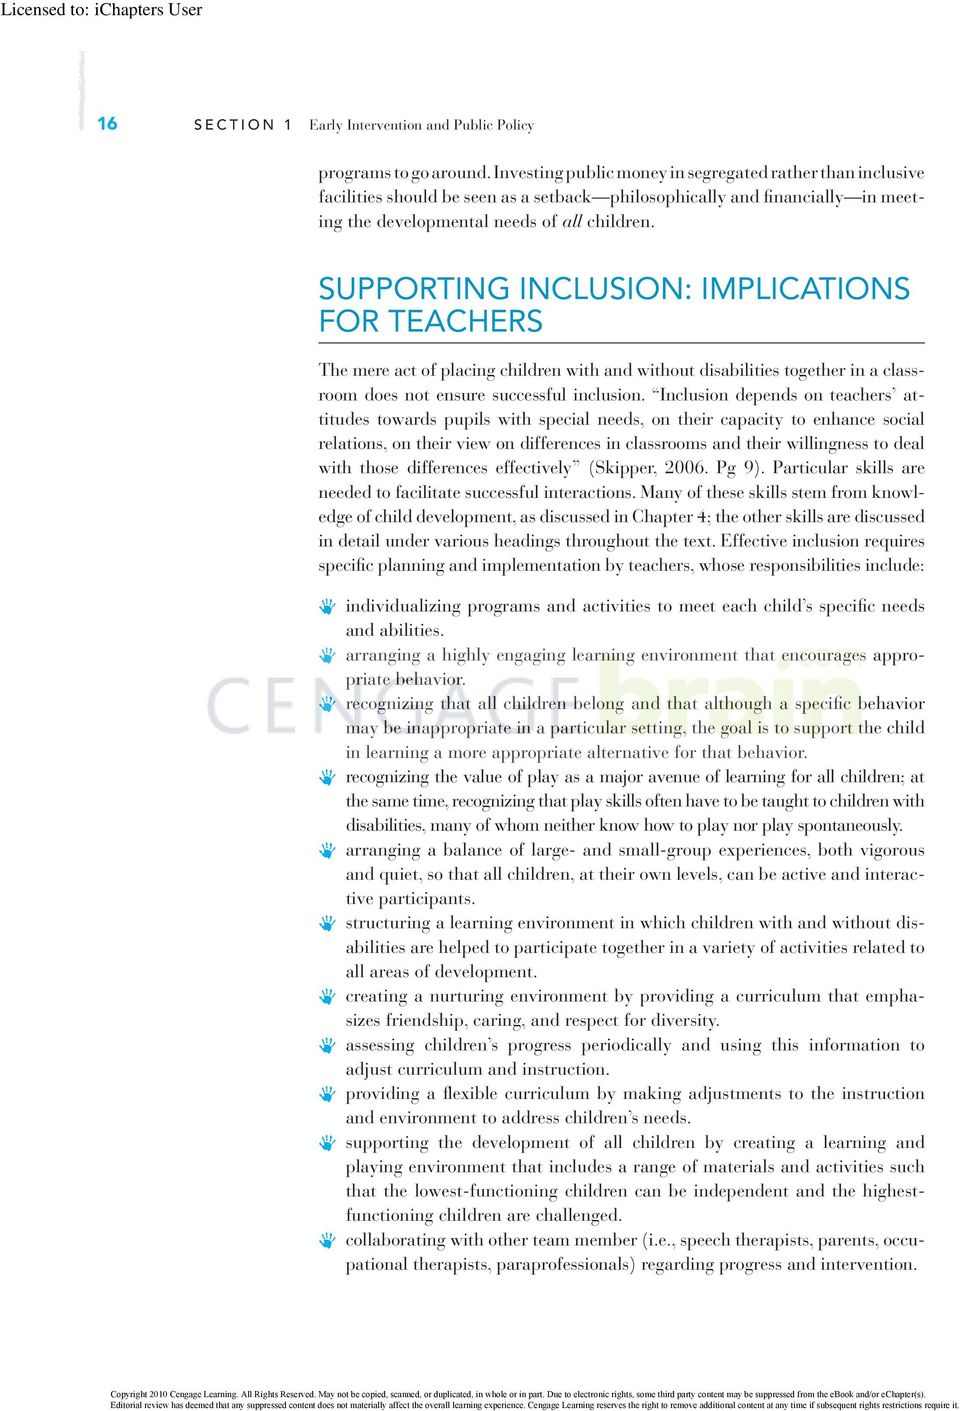 SUPPORTING INCLUSION: IMPLICATIONS FOR TEACHERS The mere act of placing children with and without disabilities together in a classroom does not ensure successful inclusion.